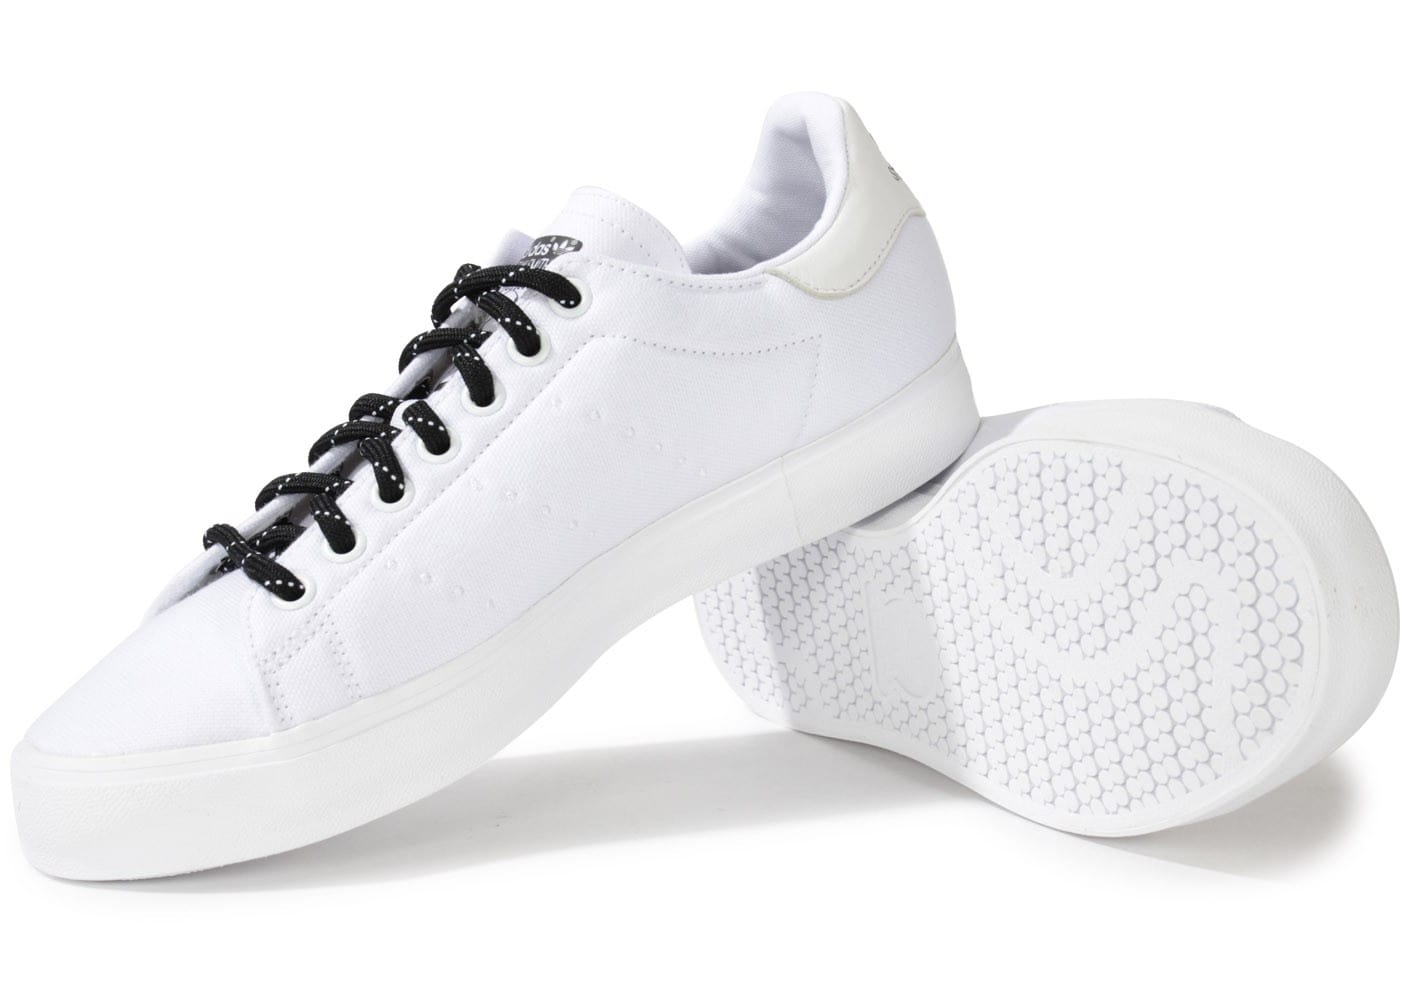 Toile Stan Baskets Adidas Chausport Homme Smith Chaussures Blanche NwXnPk80O